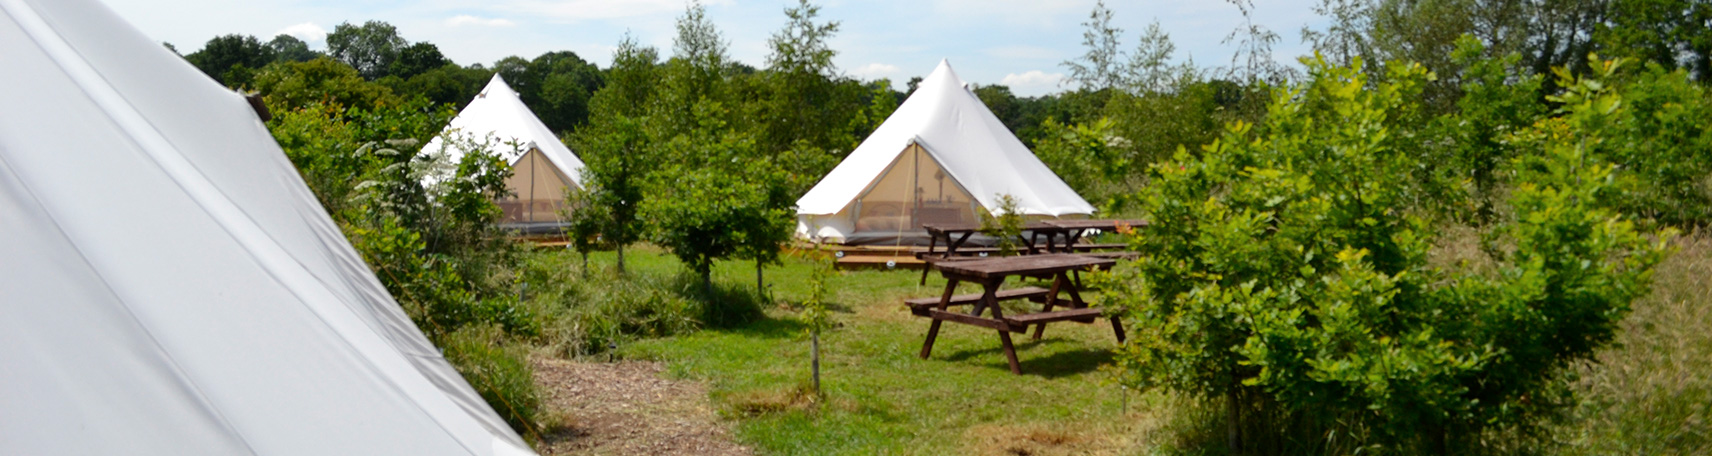 Bell Tents together in a field in the day